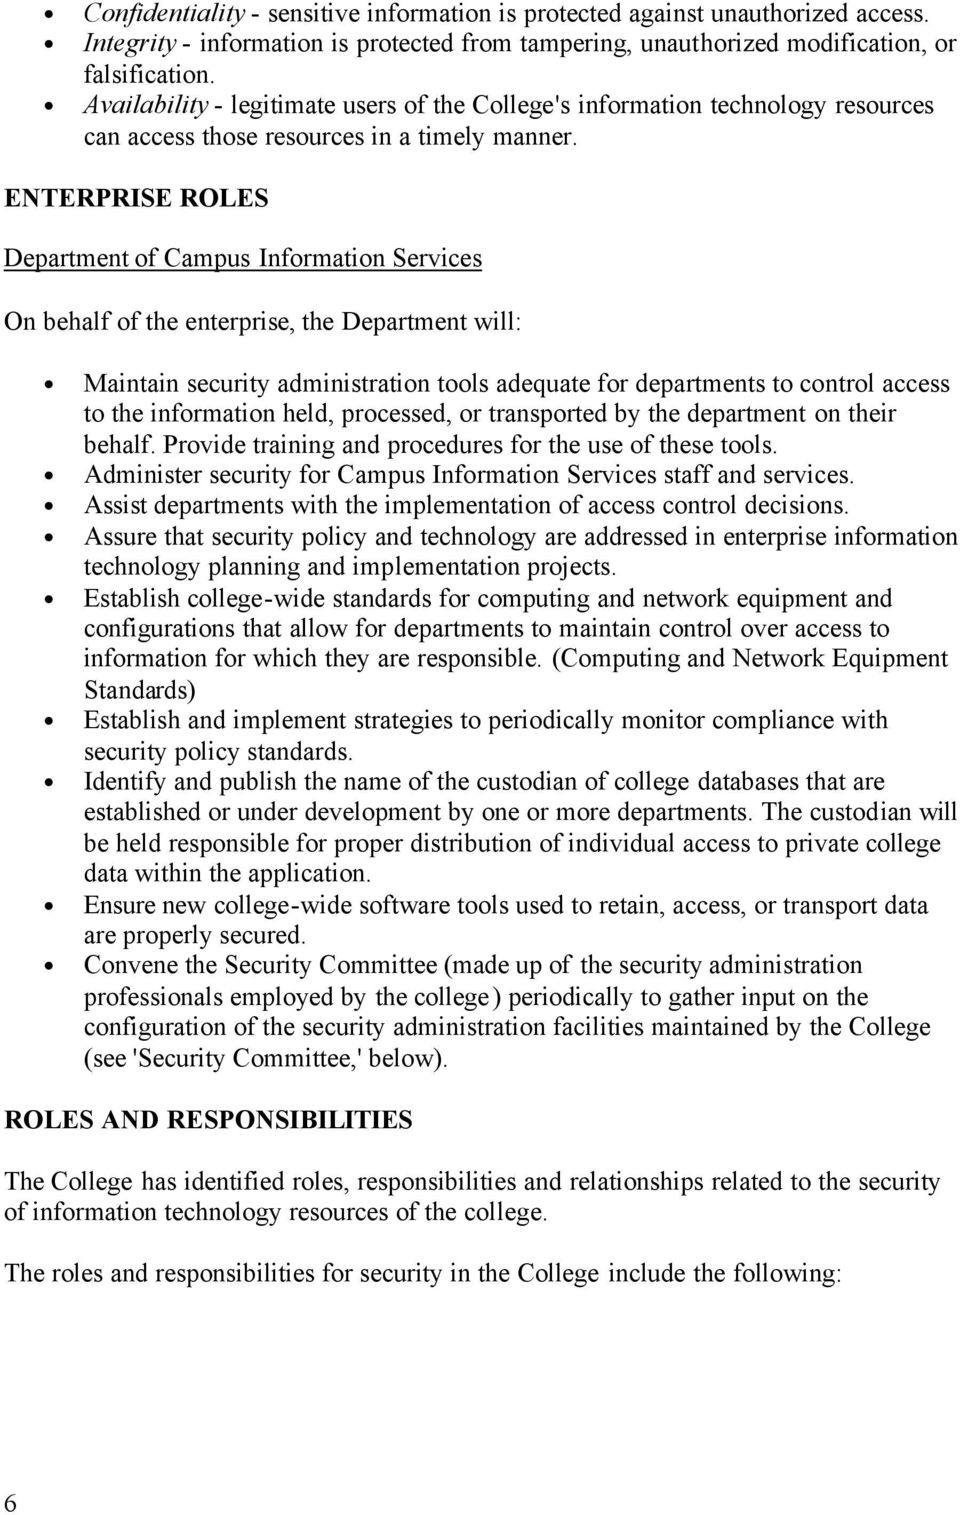 ENTERPRISE ROLES Department f Campus Infrmatin Services On behalf f the enterprise, the Department will: Maintain security administratin tls adequate fr departments t cntrl access t the infrmatin